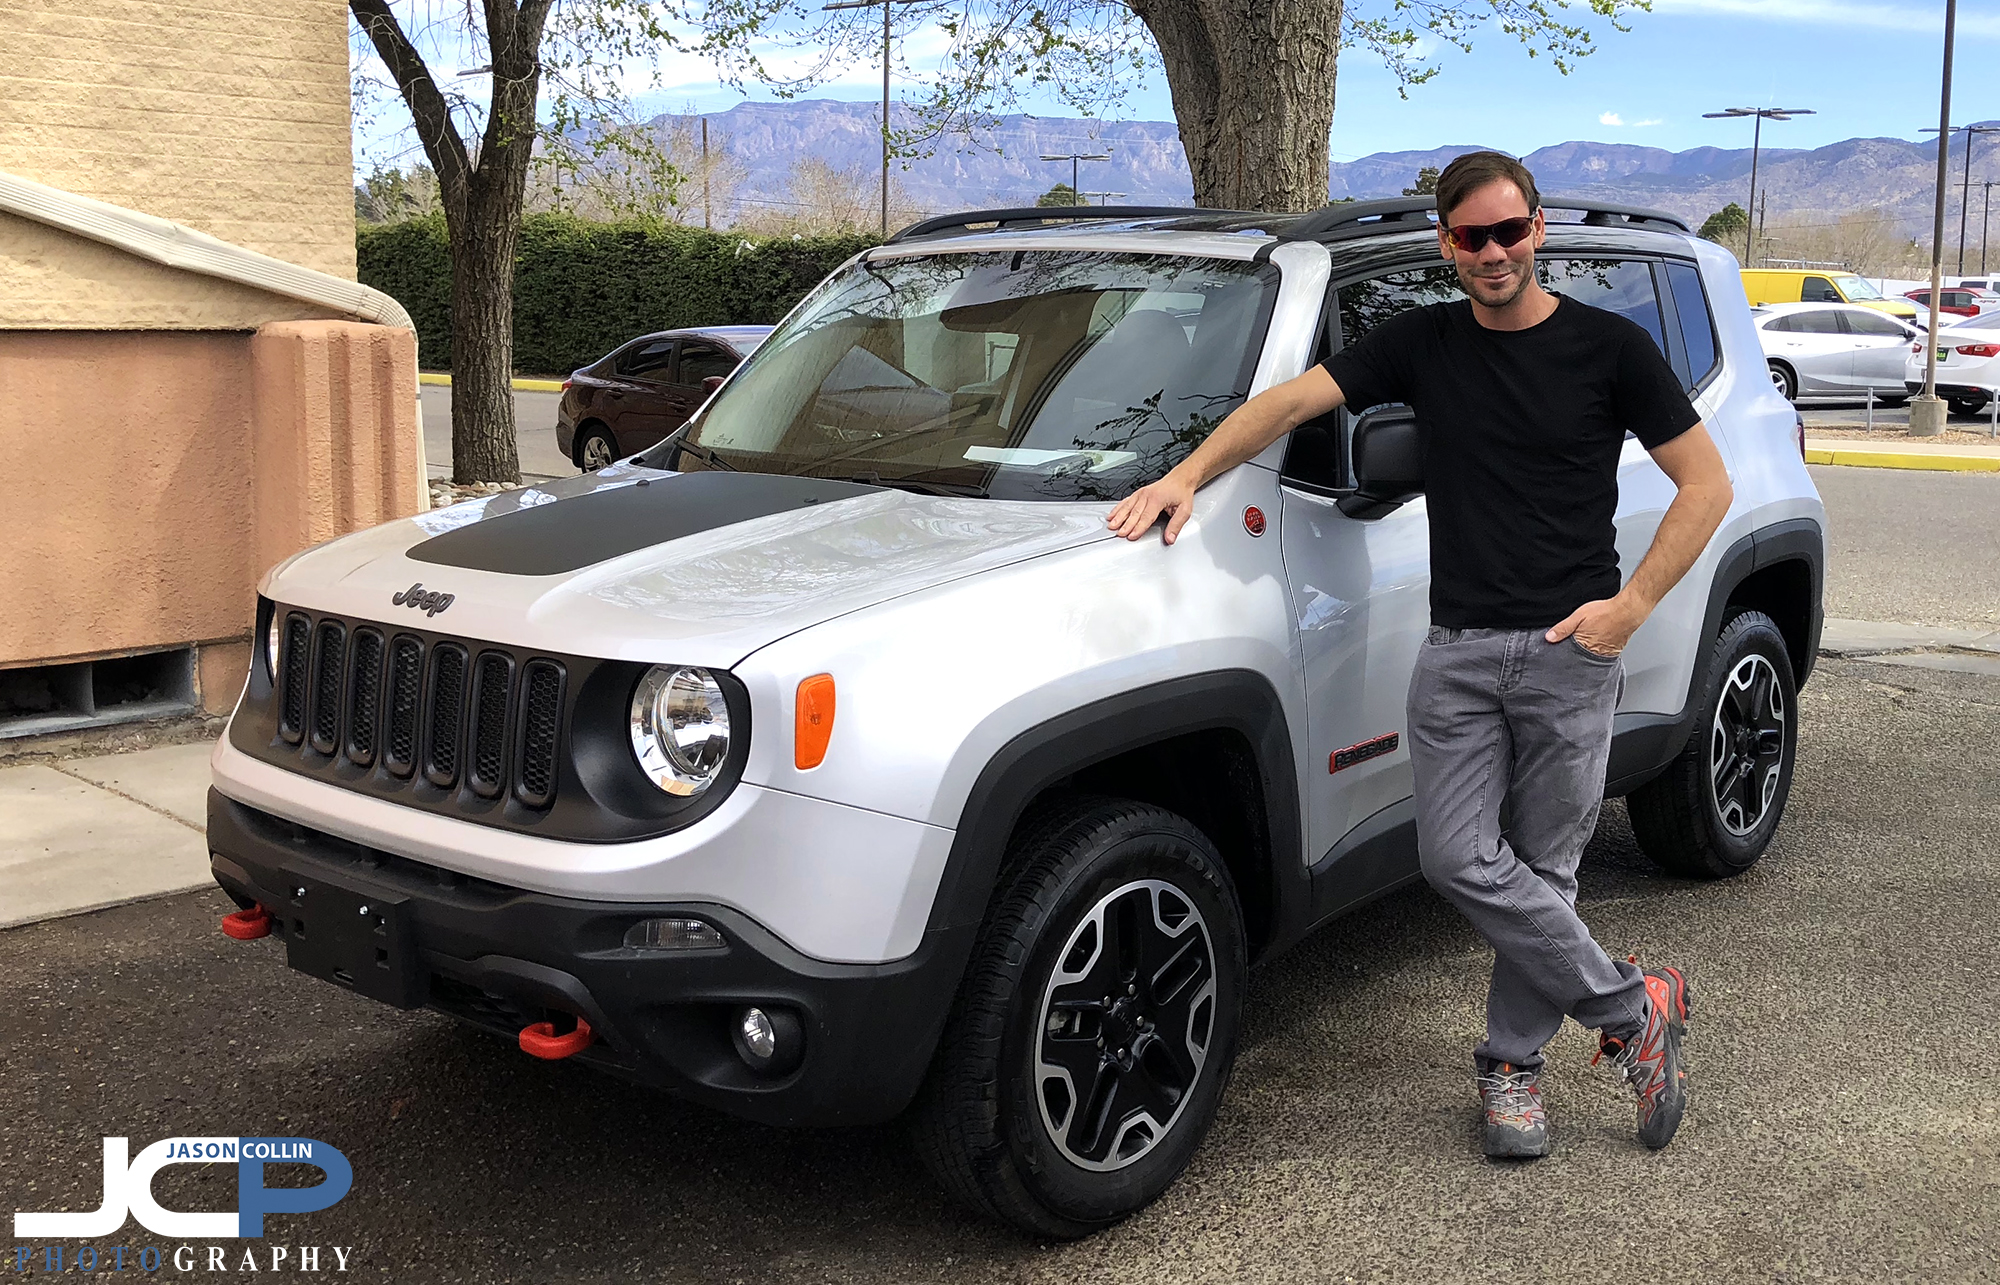 Picking up my new 2017 Jeep Renegade Trailhawk in Albuquerque, New Mexico